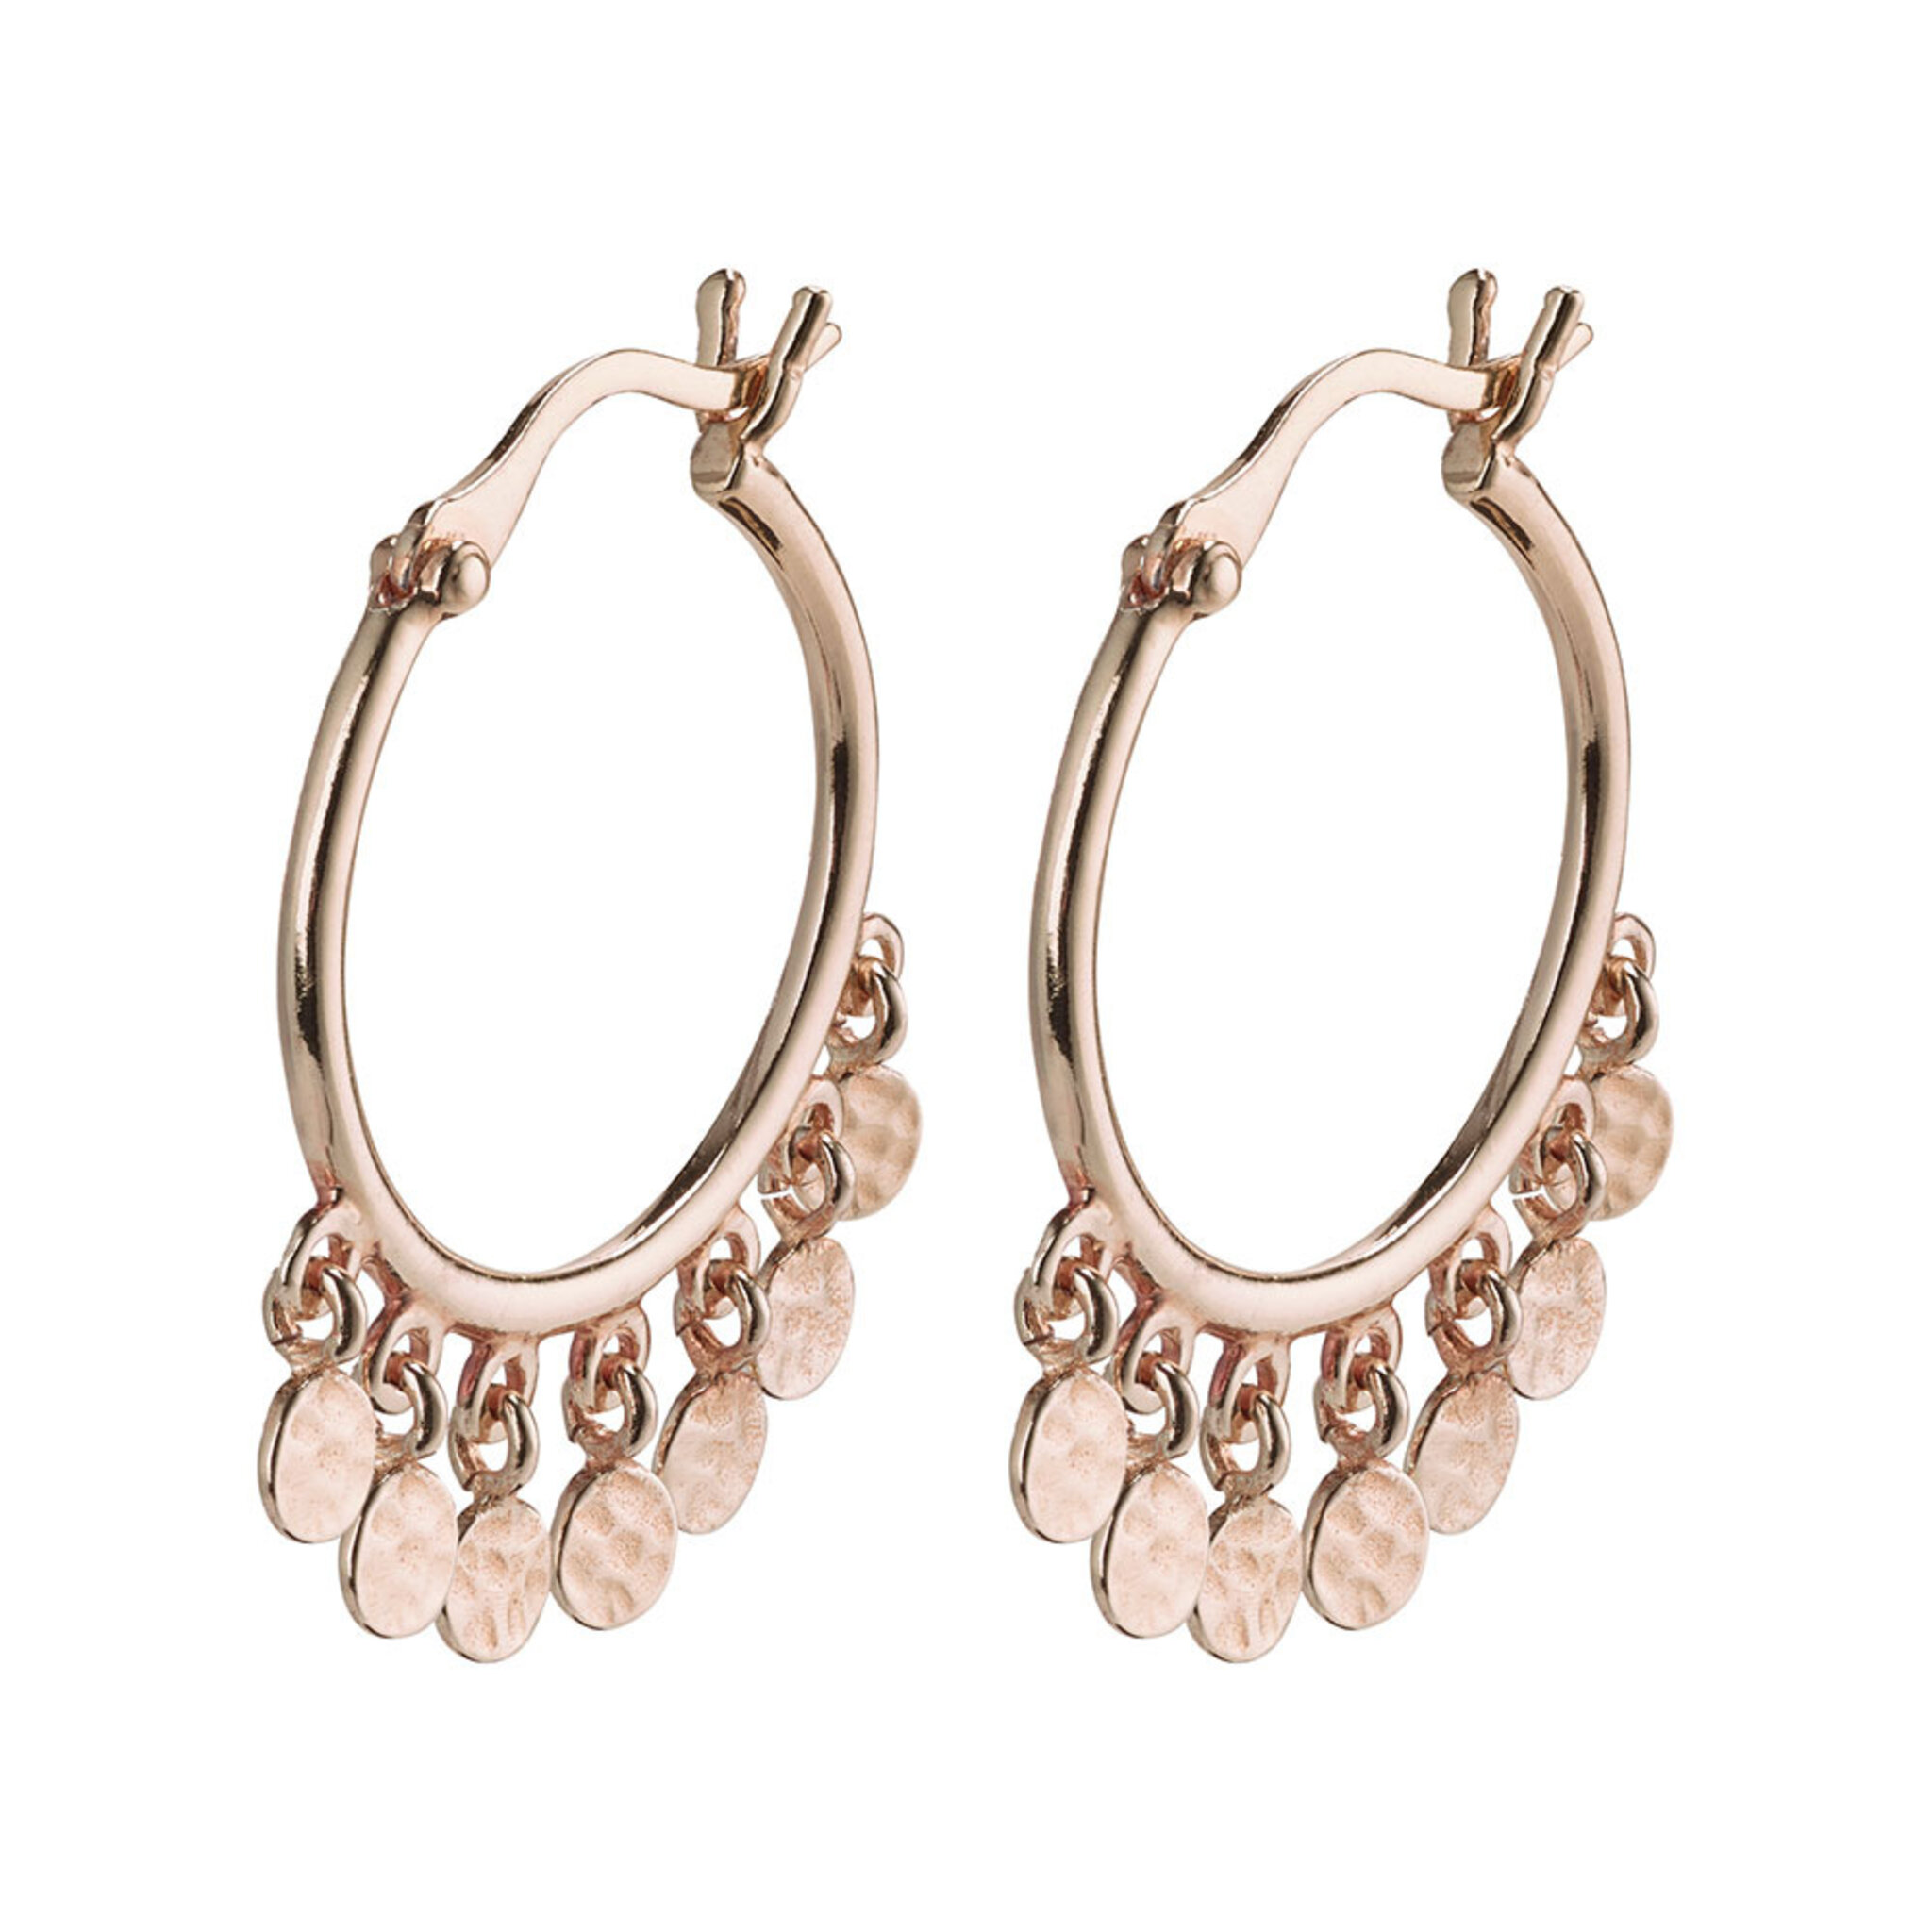 Earrings : Panna : Rose Gold Plated, ONE SIZE